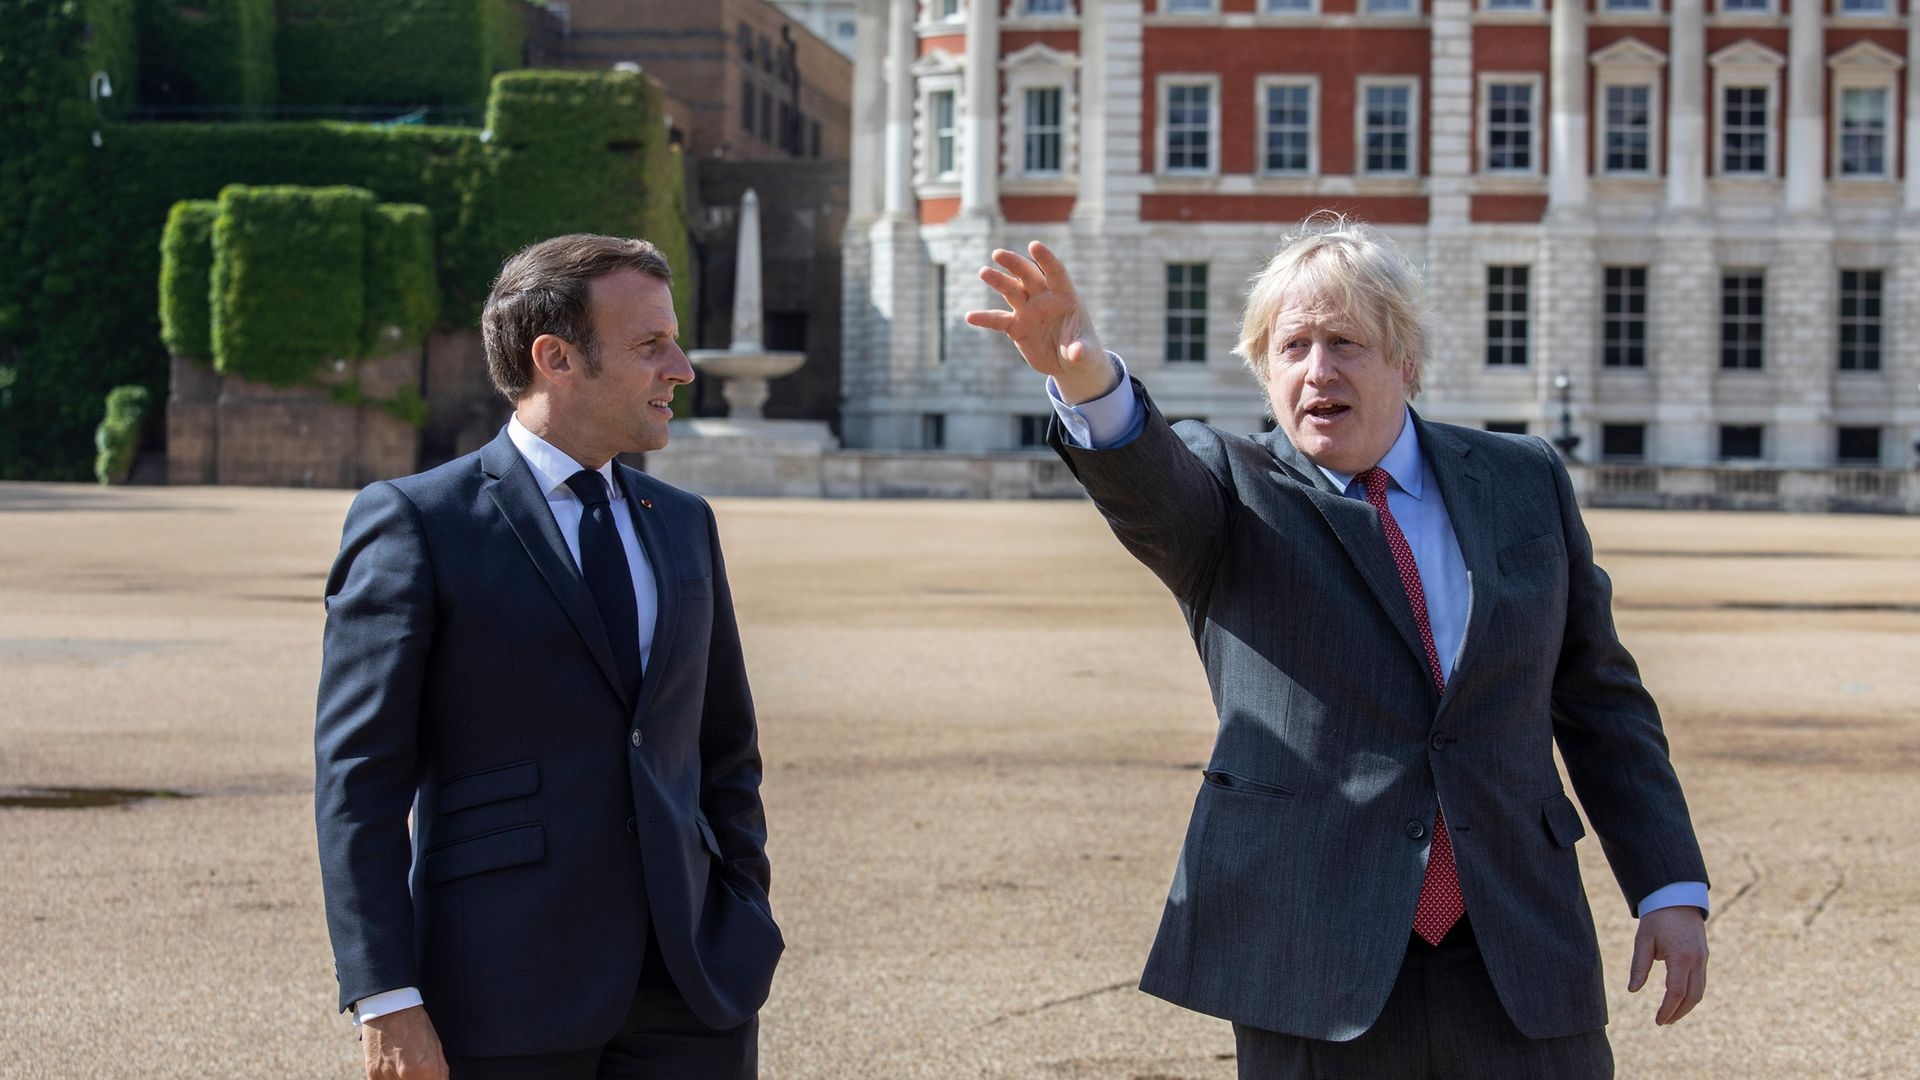 Prime minister Boris Johnson (right) and French president Emmanuel Macron watch a flypast of the Red Arrows and their French equivalent, La Patrouille de France from Horse Guards Parade in London during his visit to the UK - Credit: PA